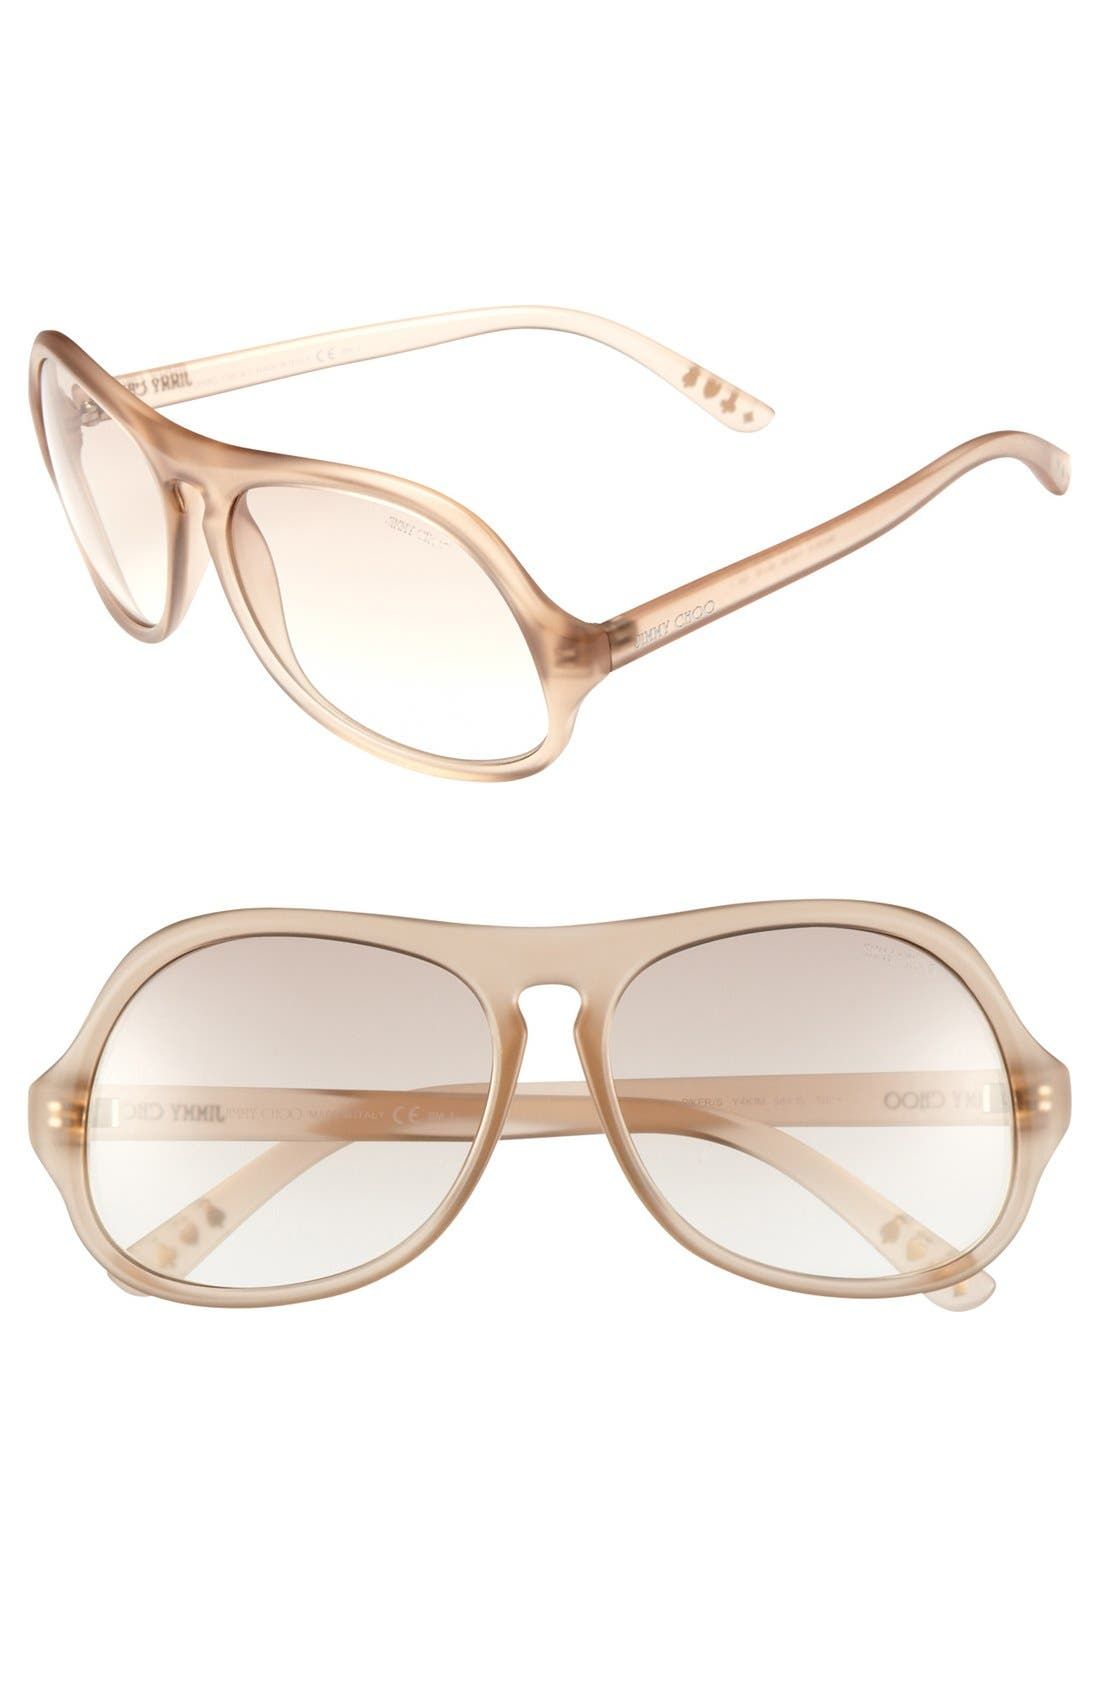 Main Image - Jimmy Choo 'Biker' Oversized Sunglasses